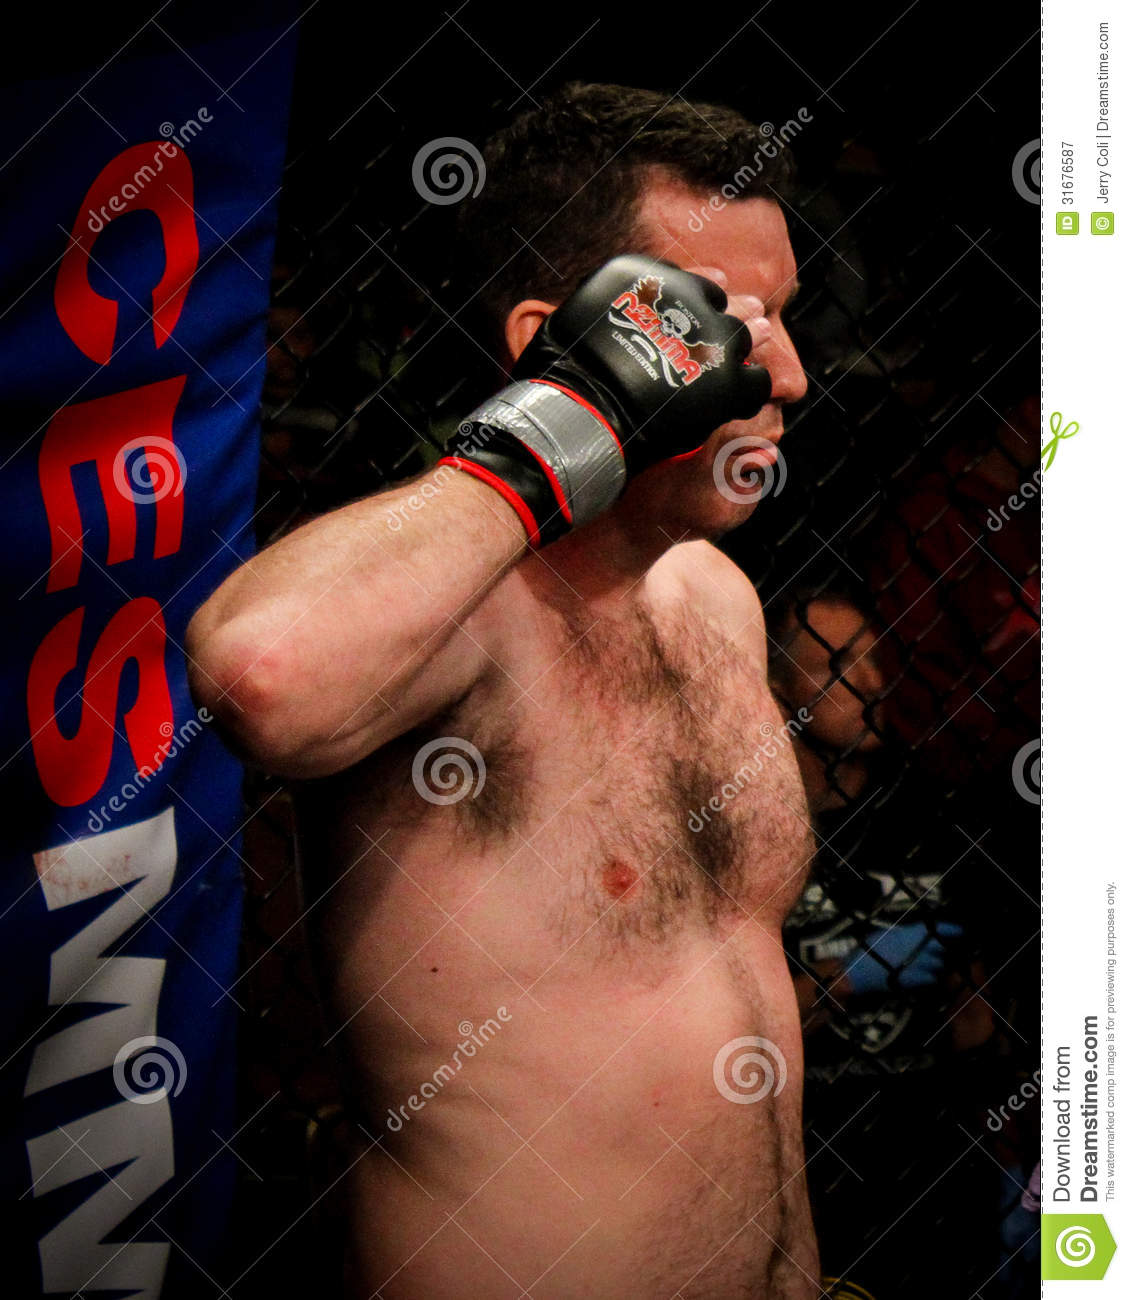 - chris-cappi-woodall-salutes-national-anthem-his-fight-june-twin-river-casino-lincoln-ri-31676587